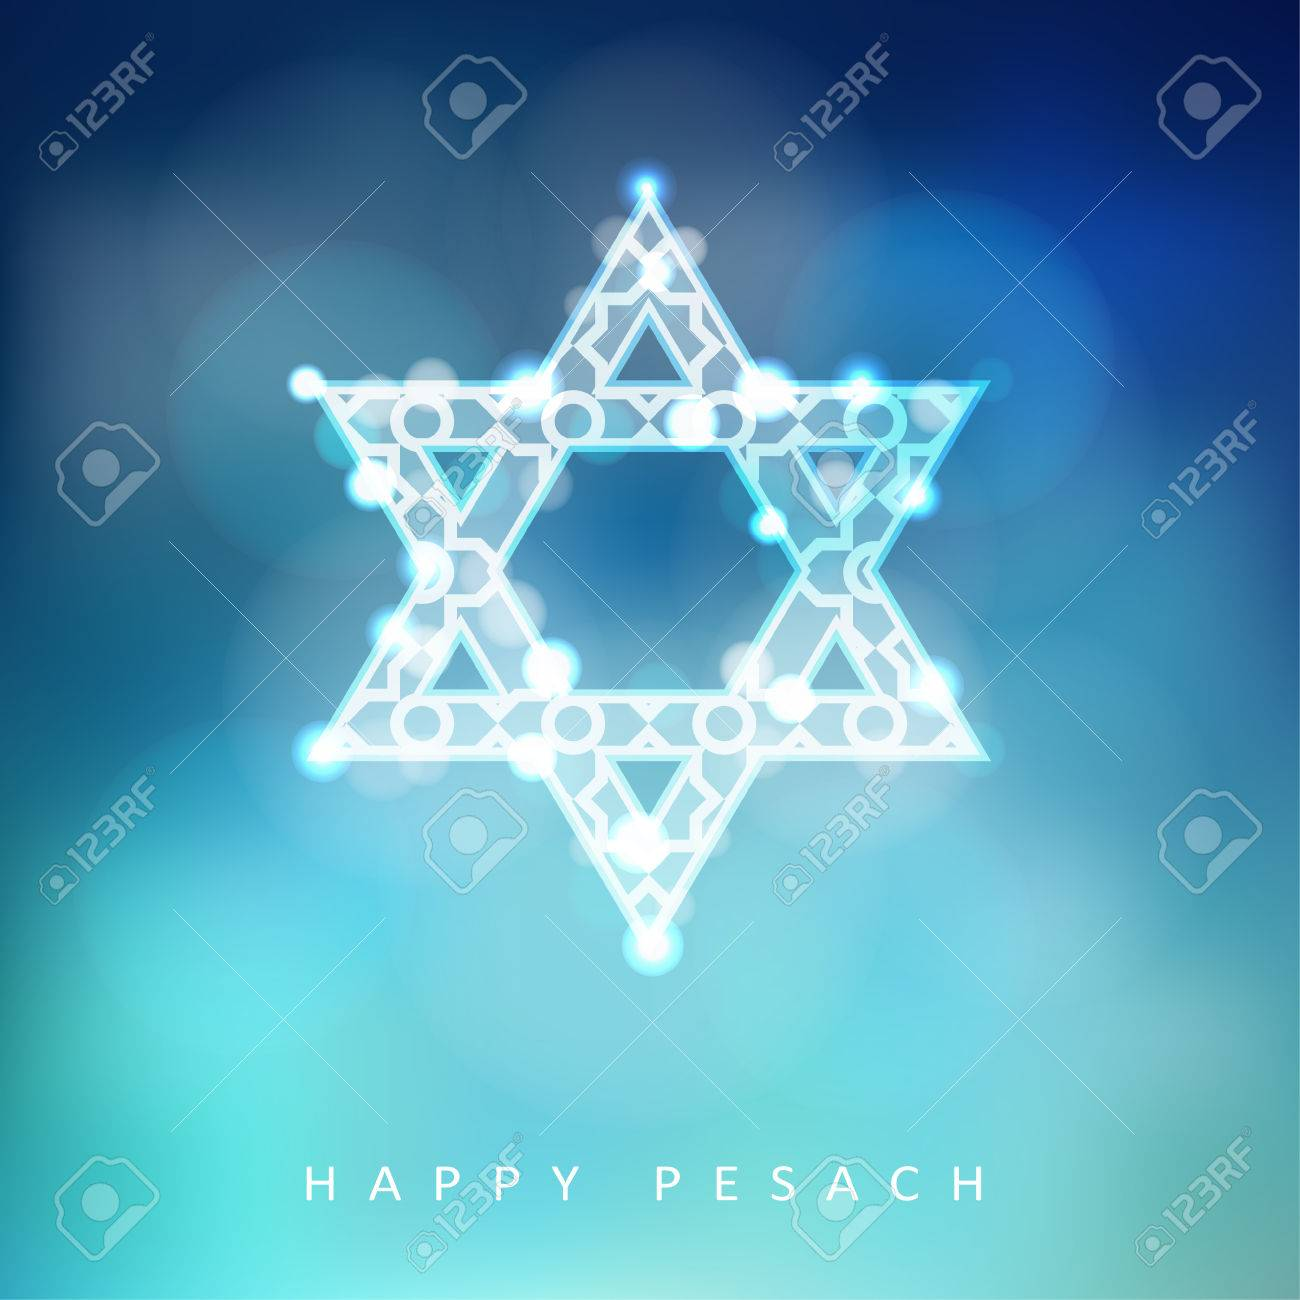 Jewish holiday passover greeting card with ornamental glittering jewish holiday passover greeting card with ornamental glittering jewish star illustration background stock vector m4hsunfo Image collections